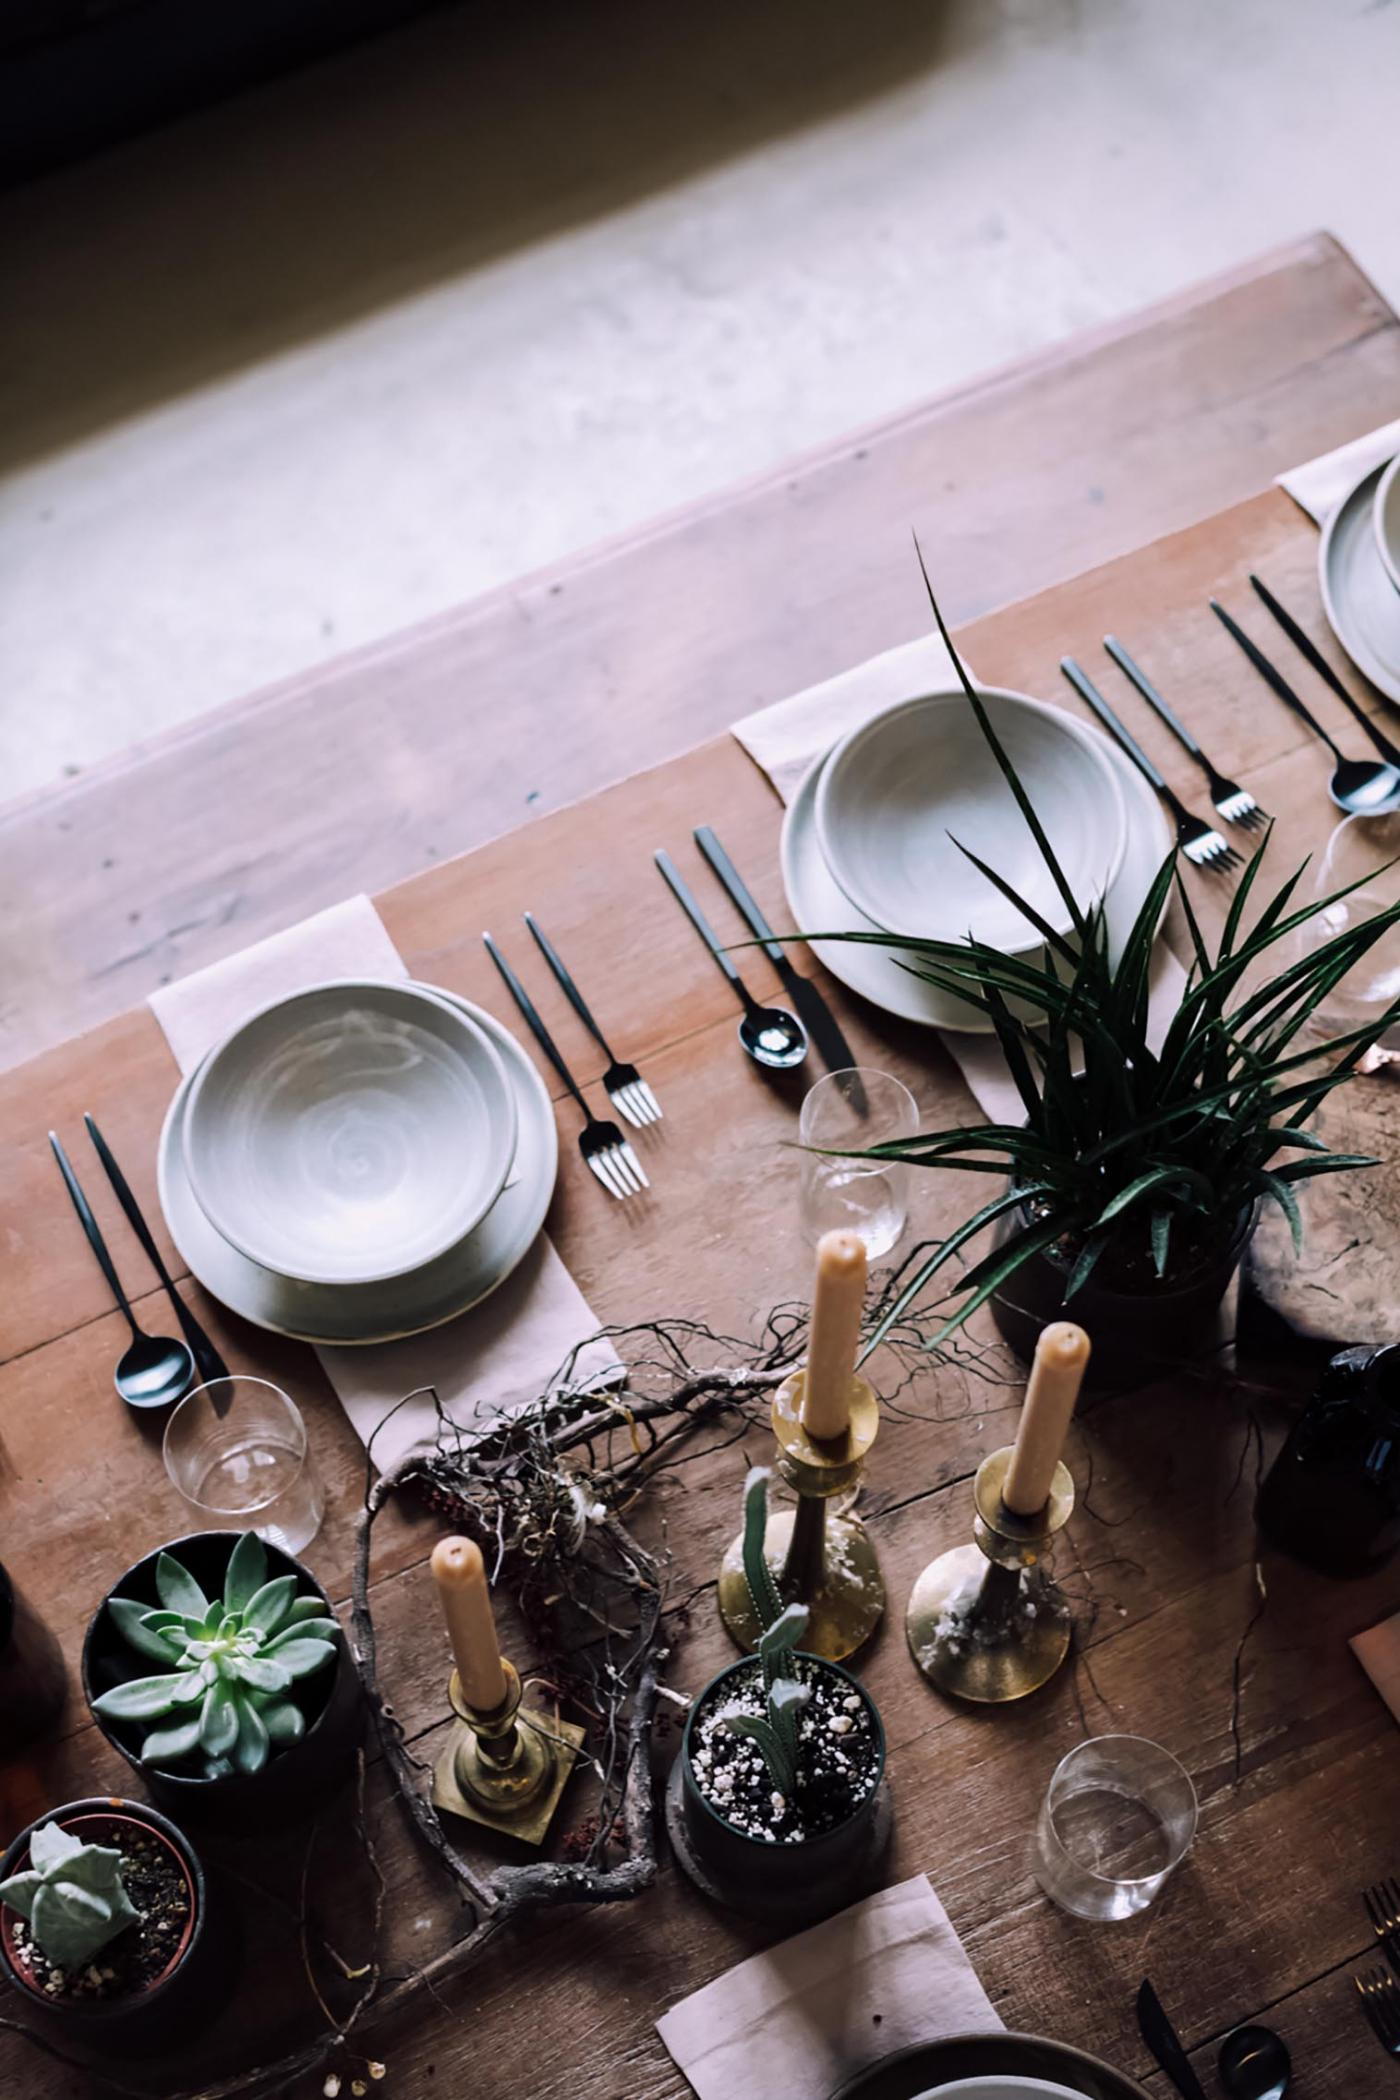 This Winter Feast Was Held in a Vintage Furniture Store